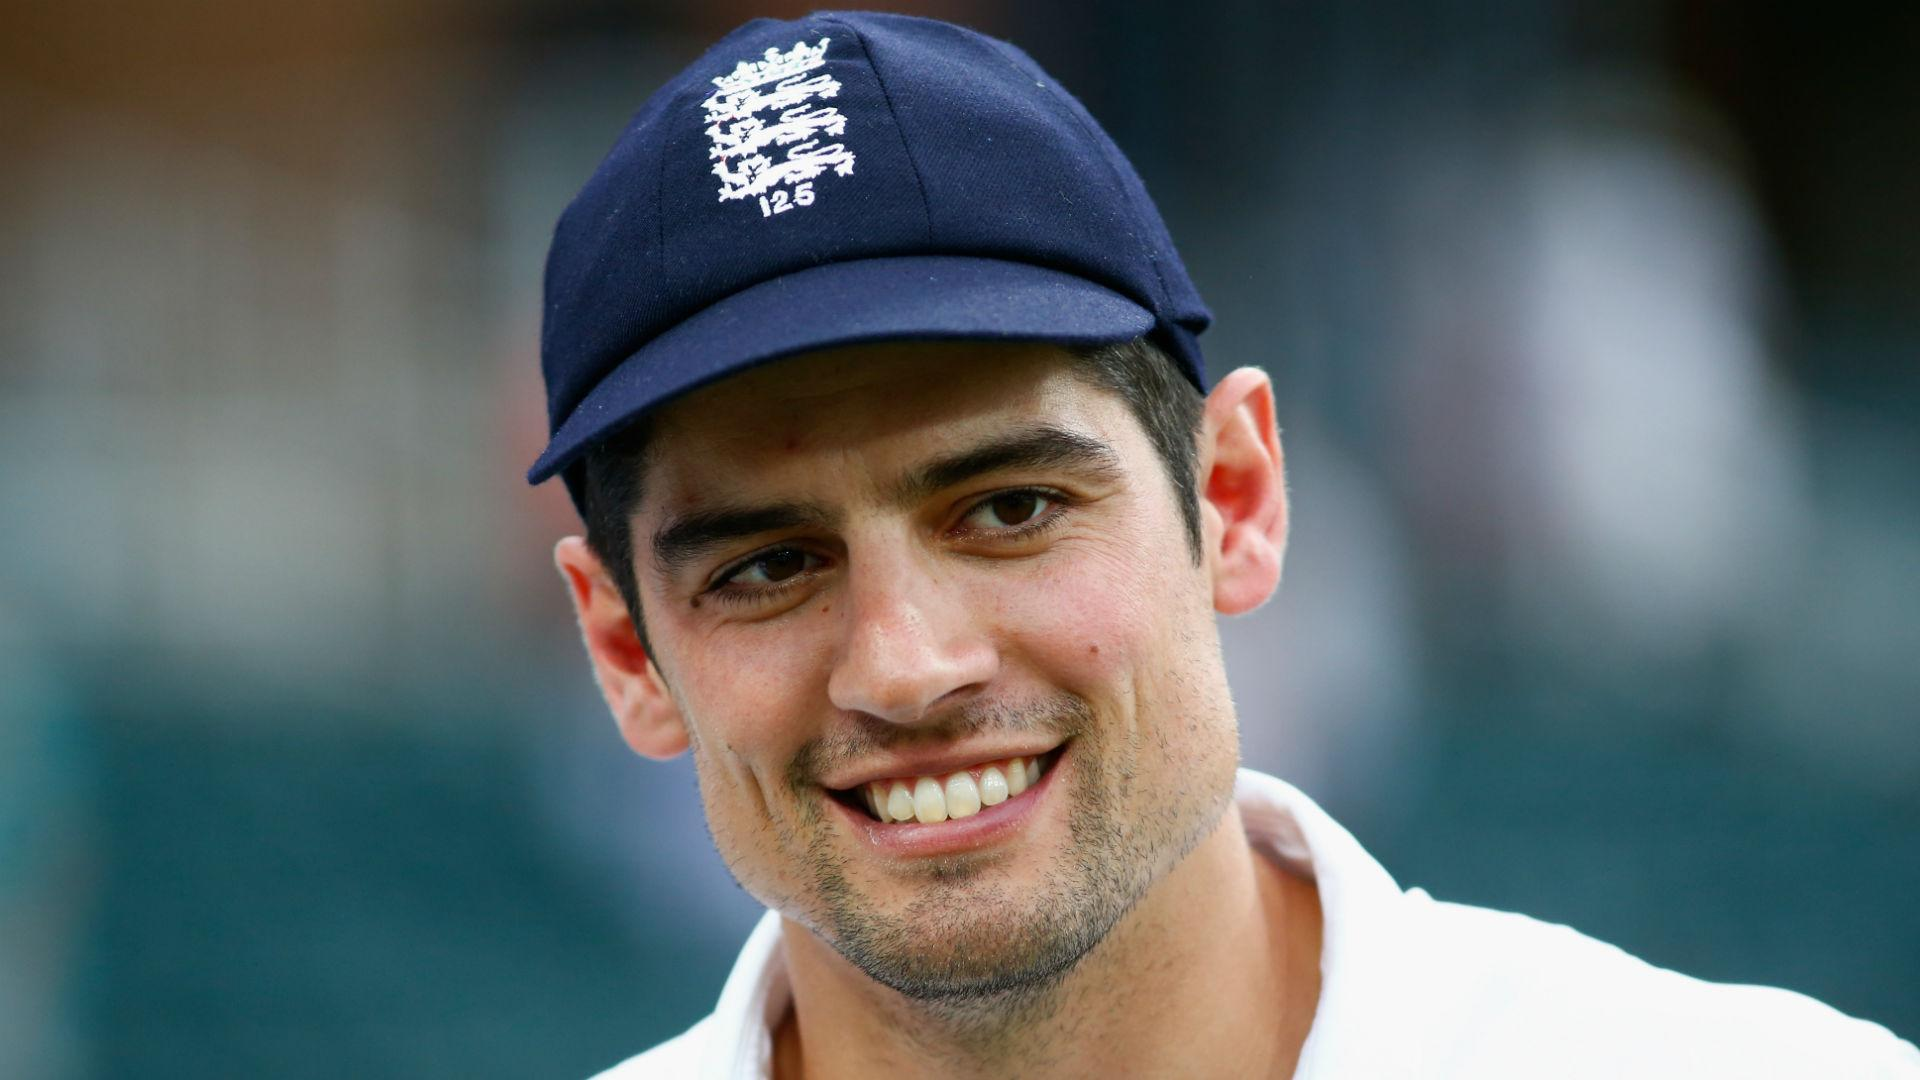 Cook comfortable after putting aside captaincy doubts